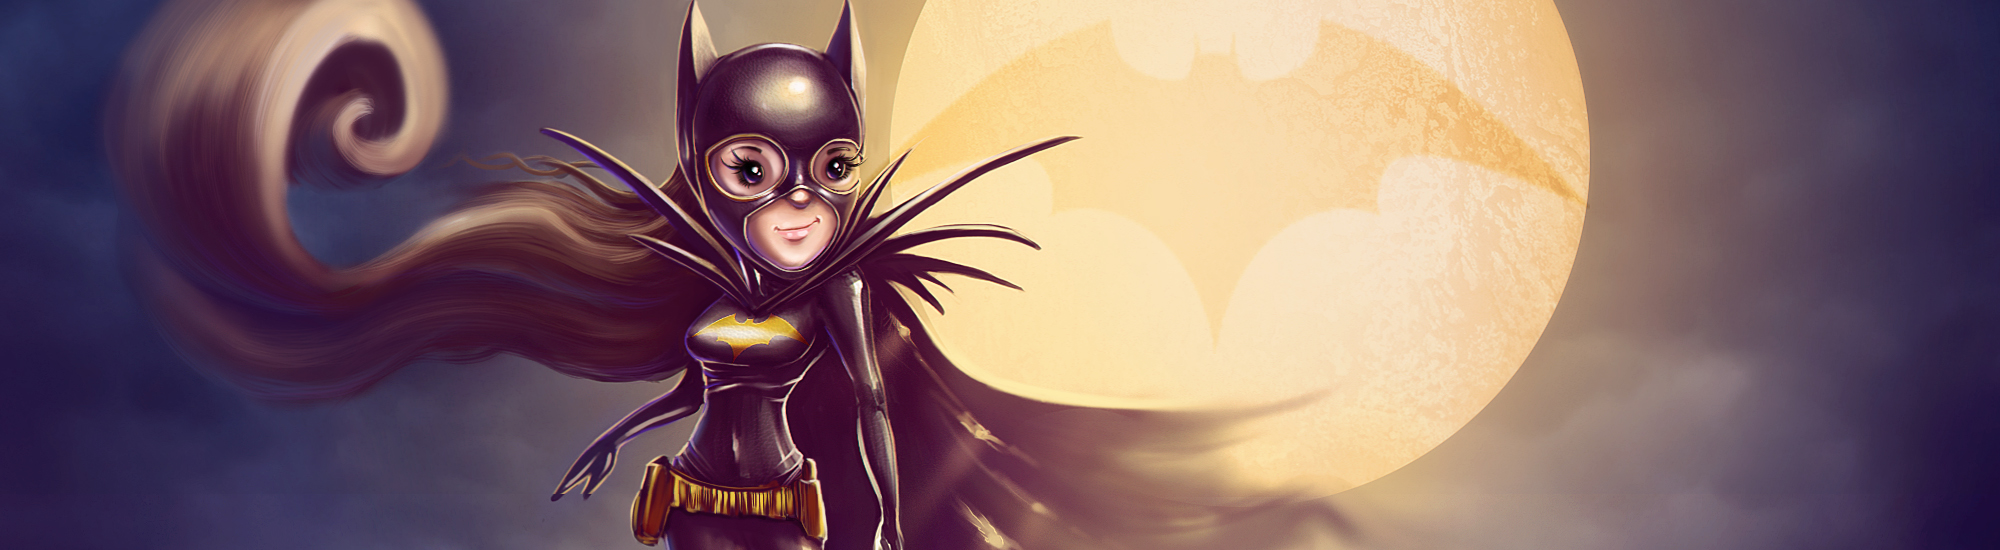 Batgirl-Shadow of the Bat by Efirka